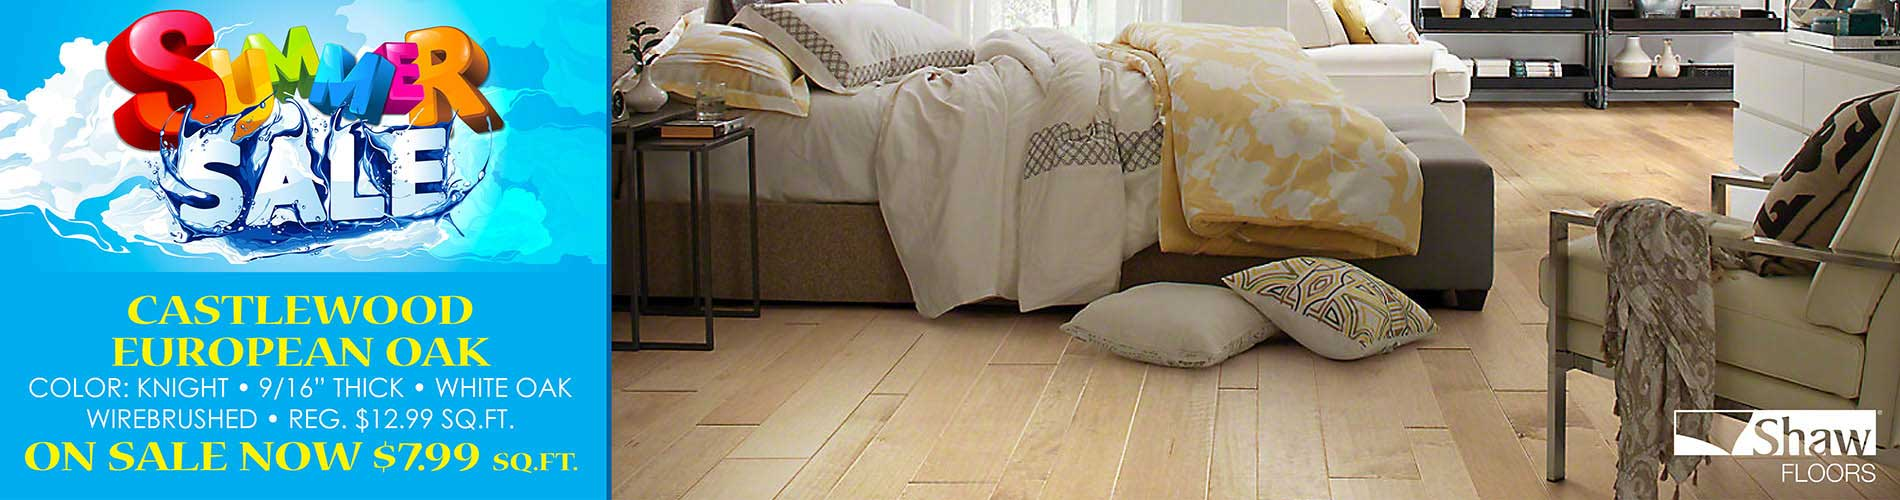 European White Oak now $7.99 sq.ft. during our Summer Sale at Fine Floorz!